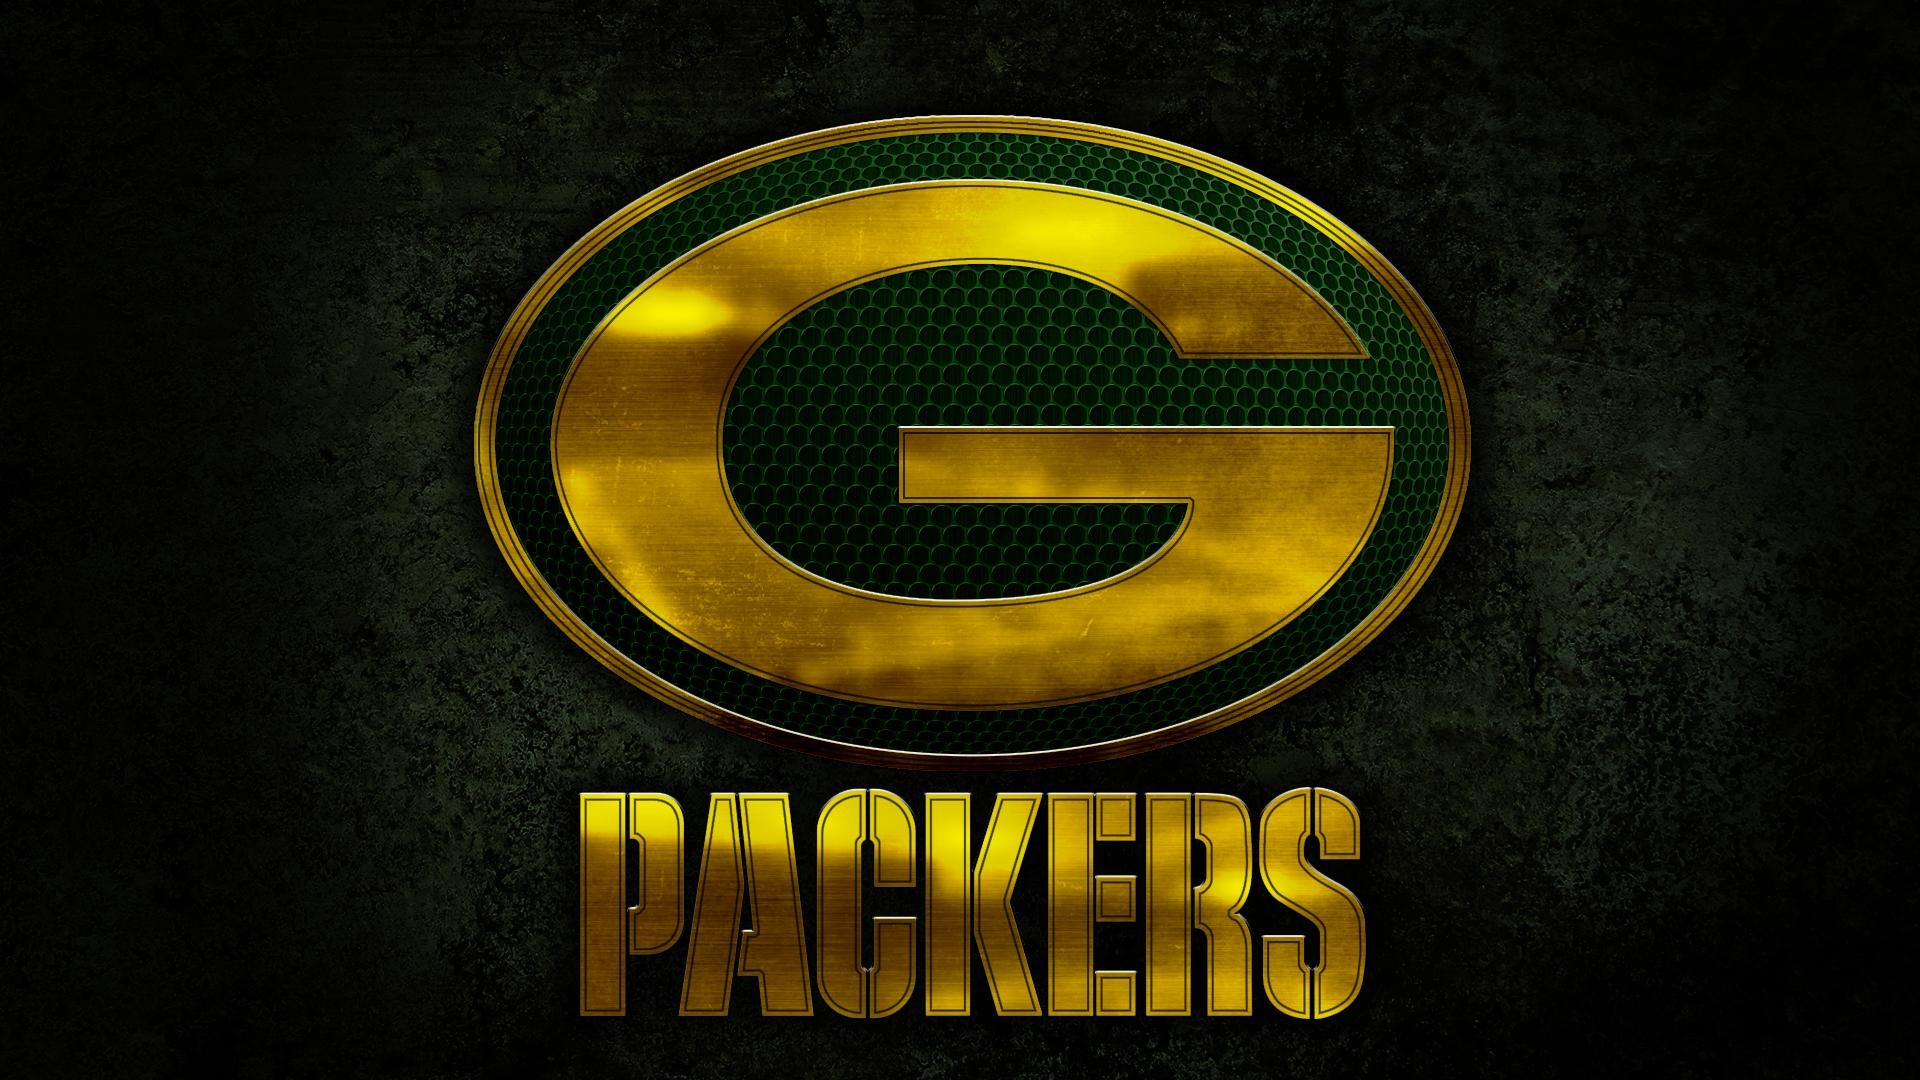 Green Bay Packers IPhone Wallpaper 1920x1080